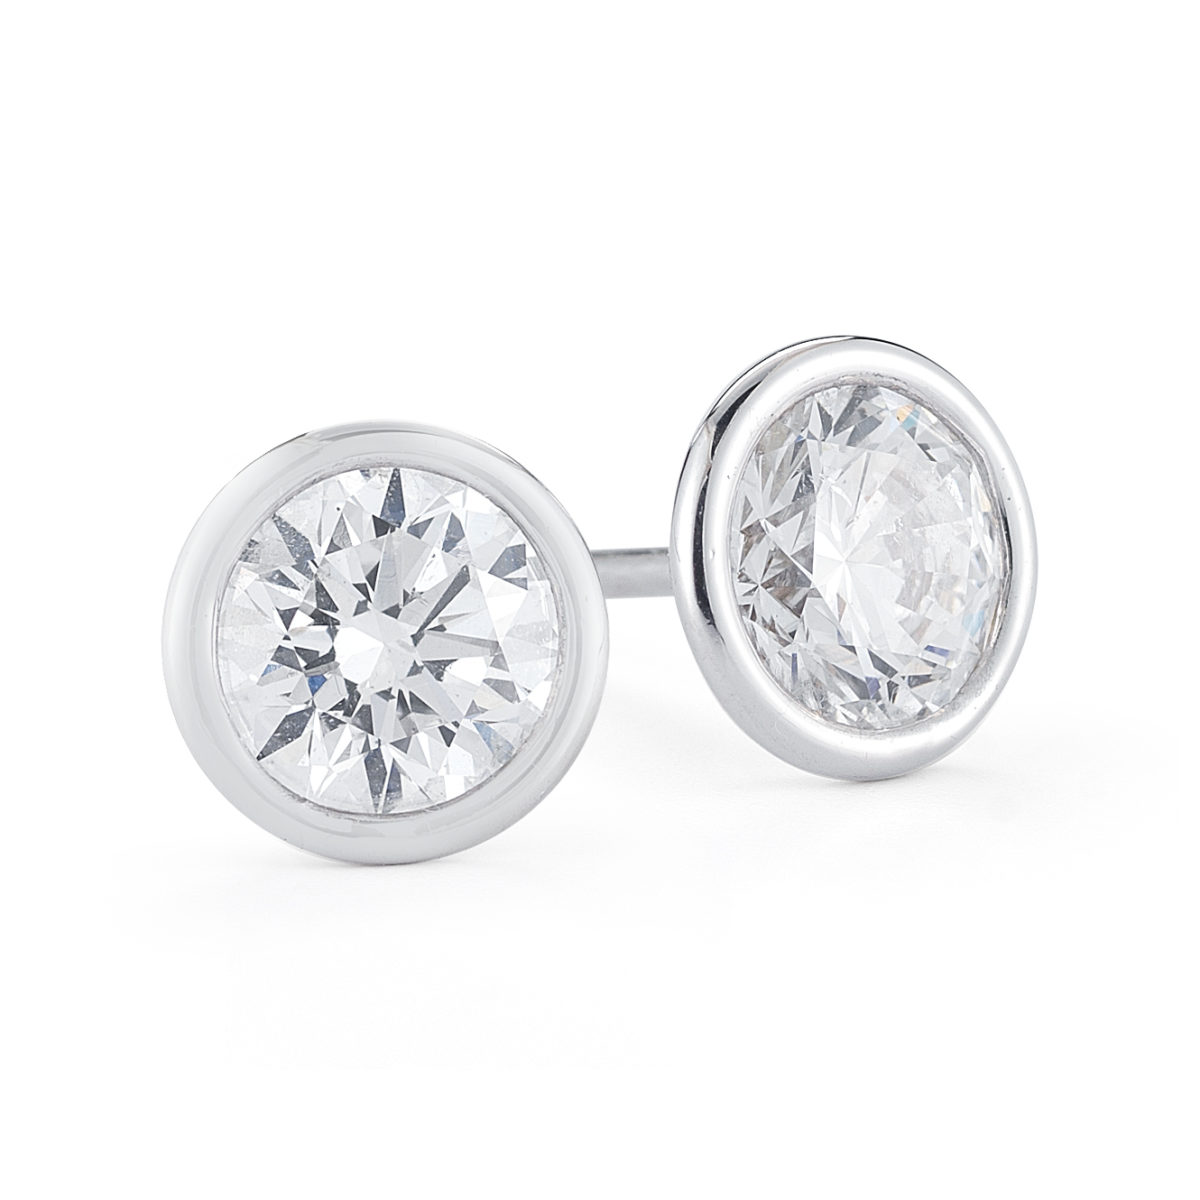 bezel stud brilliant south and class adelaide cut set earrings australia retail per a jewellers er manufacturing